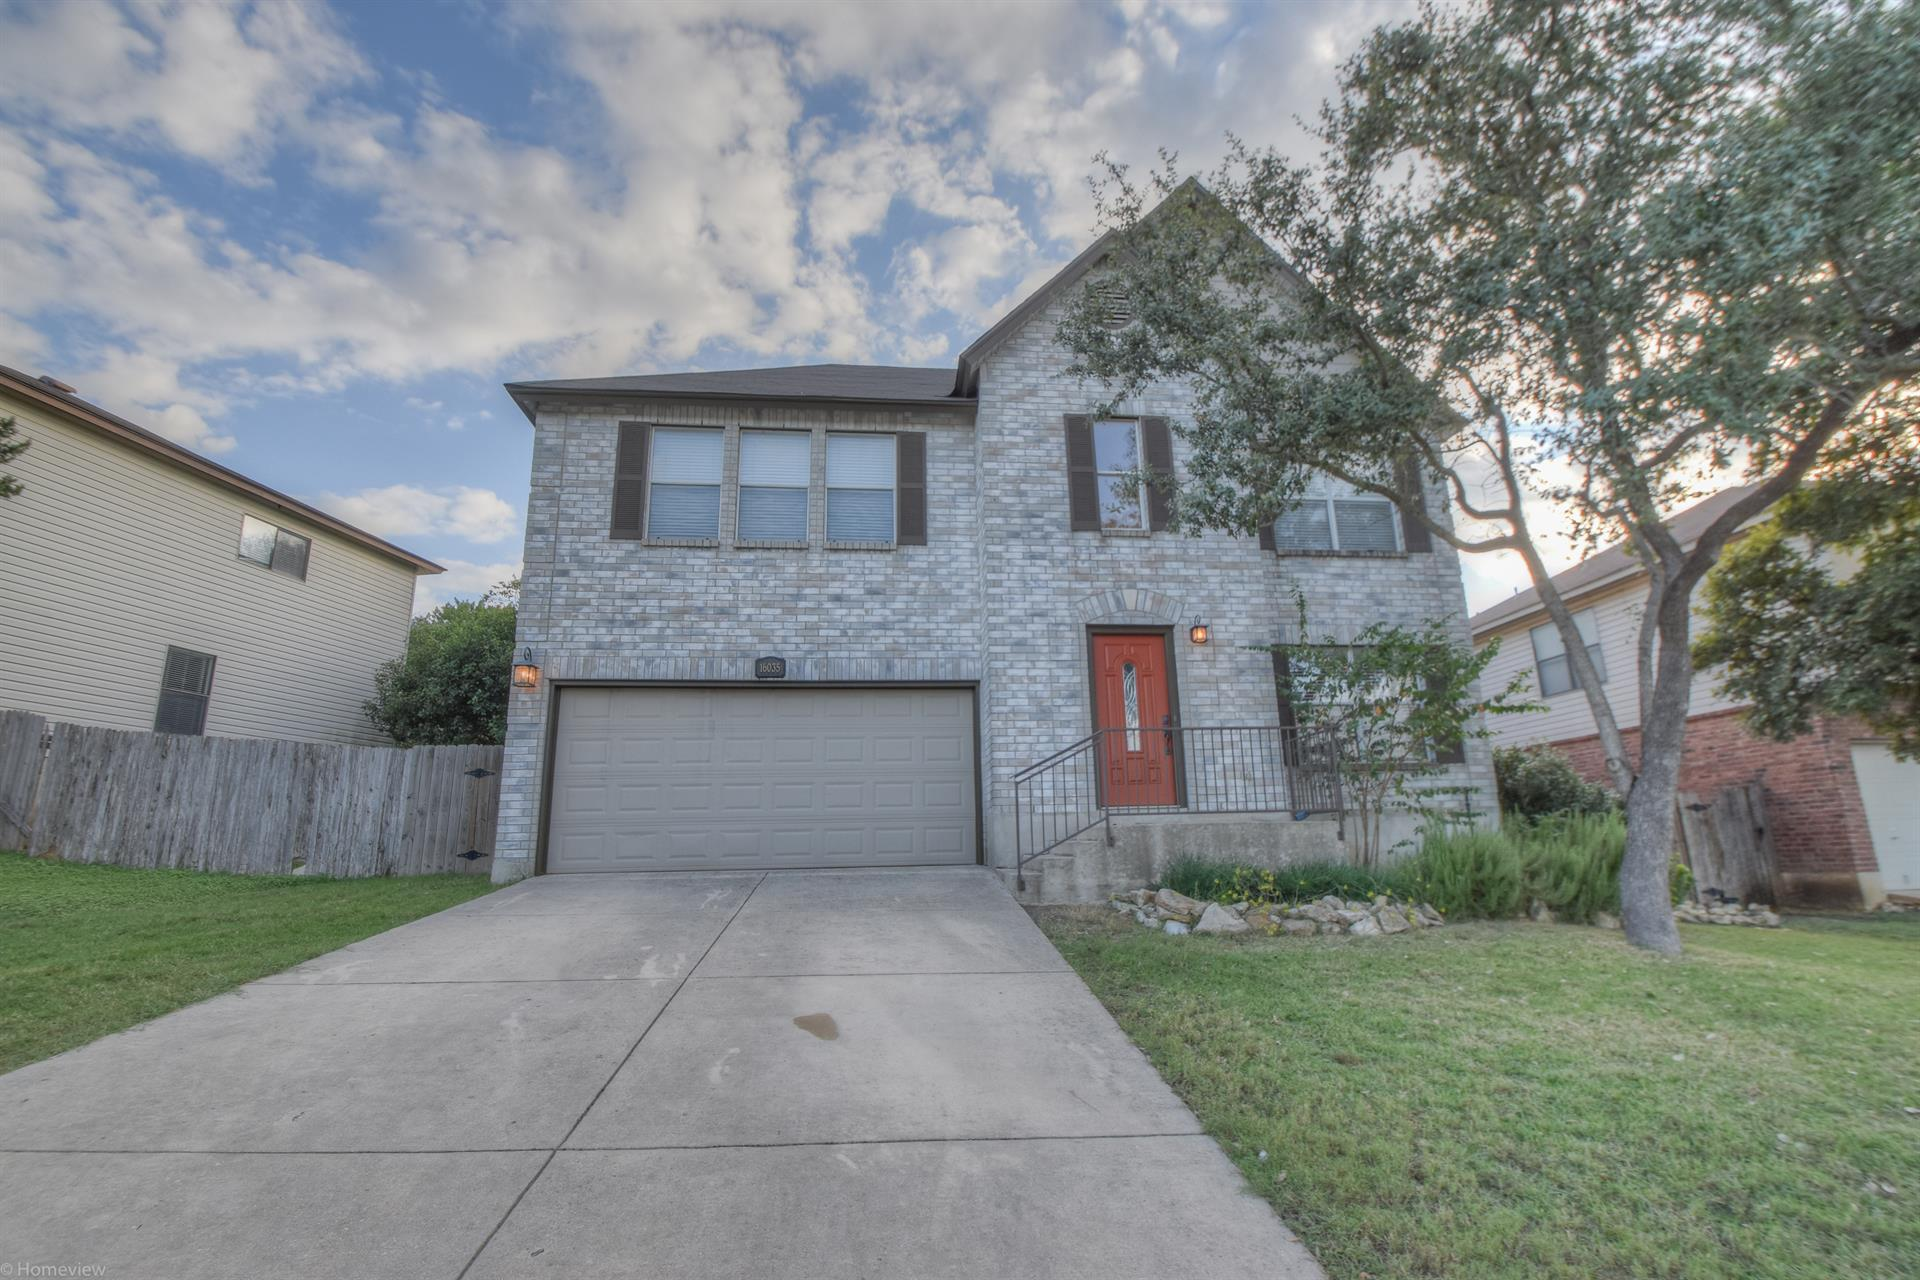 Residential for Sale at 16035 Walnut Creek Dr 16035 Walnut Creek Dr San Antonio, Texas 78247 United States